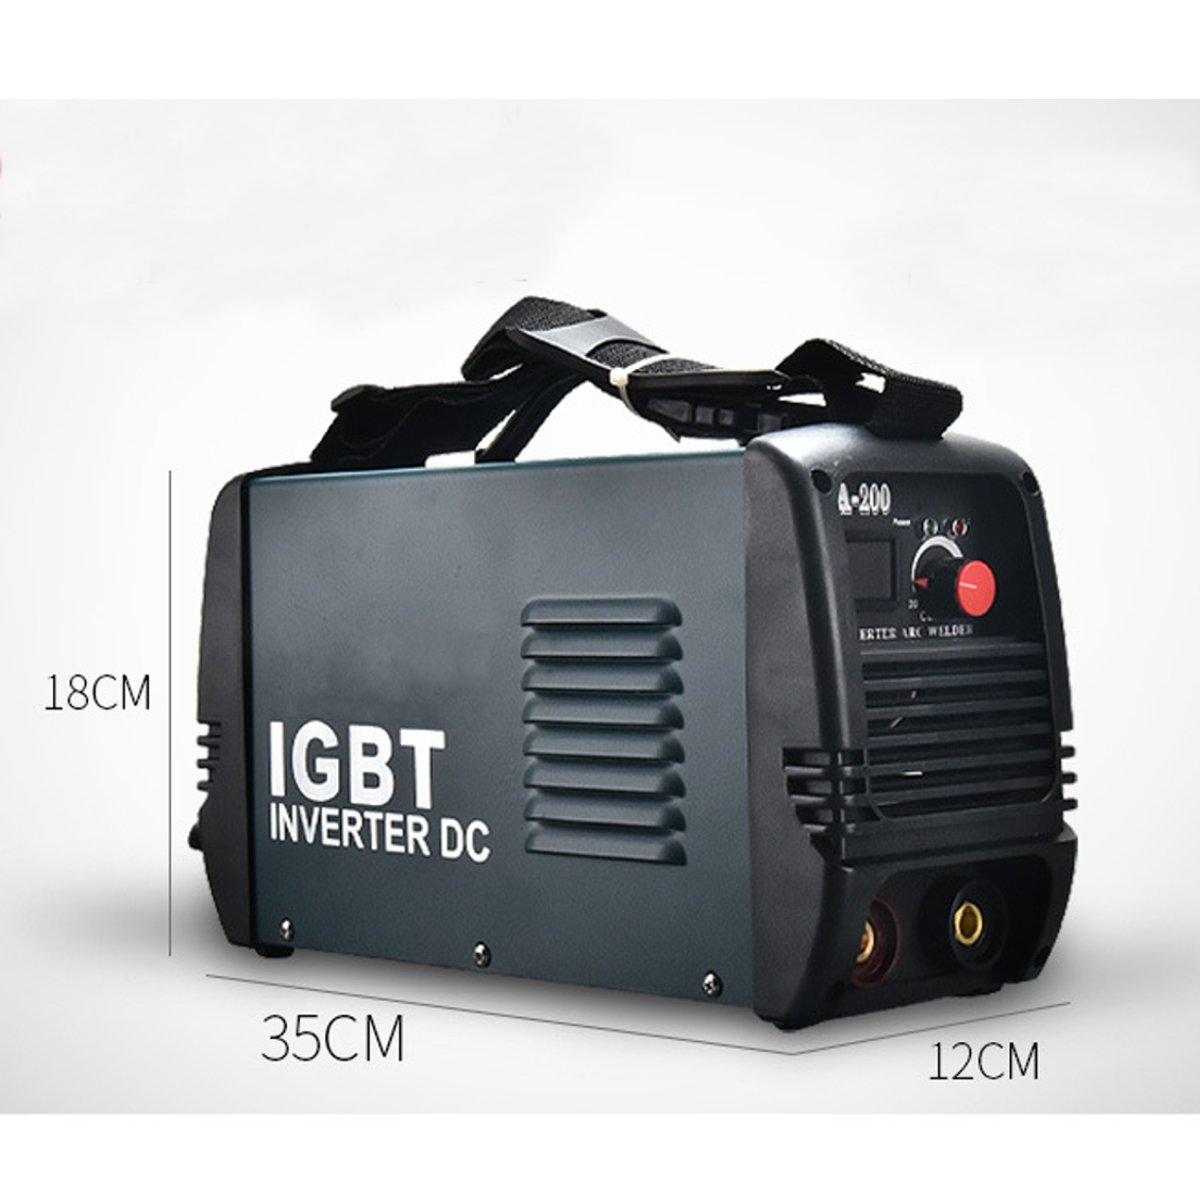 220V 4800W Mini ARC Inverter Welder IGBT Handheld Portable Arc Welding Machine